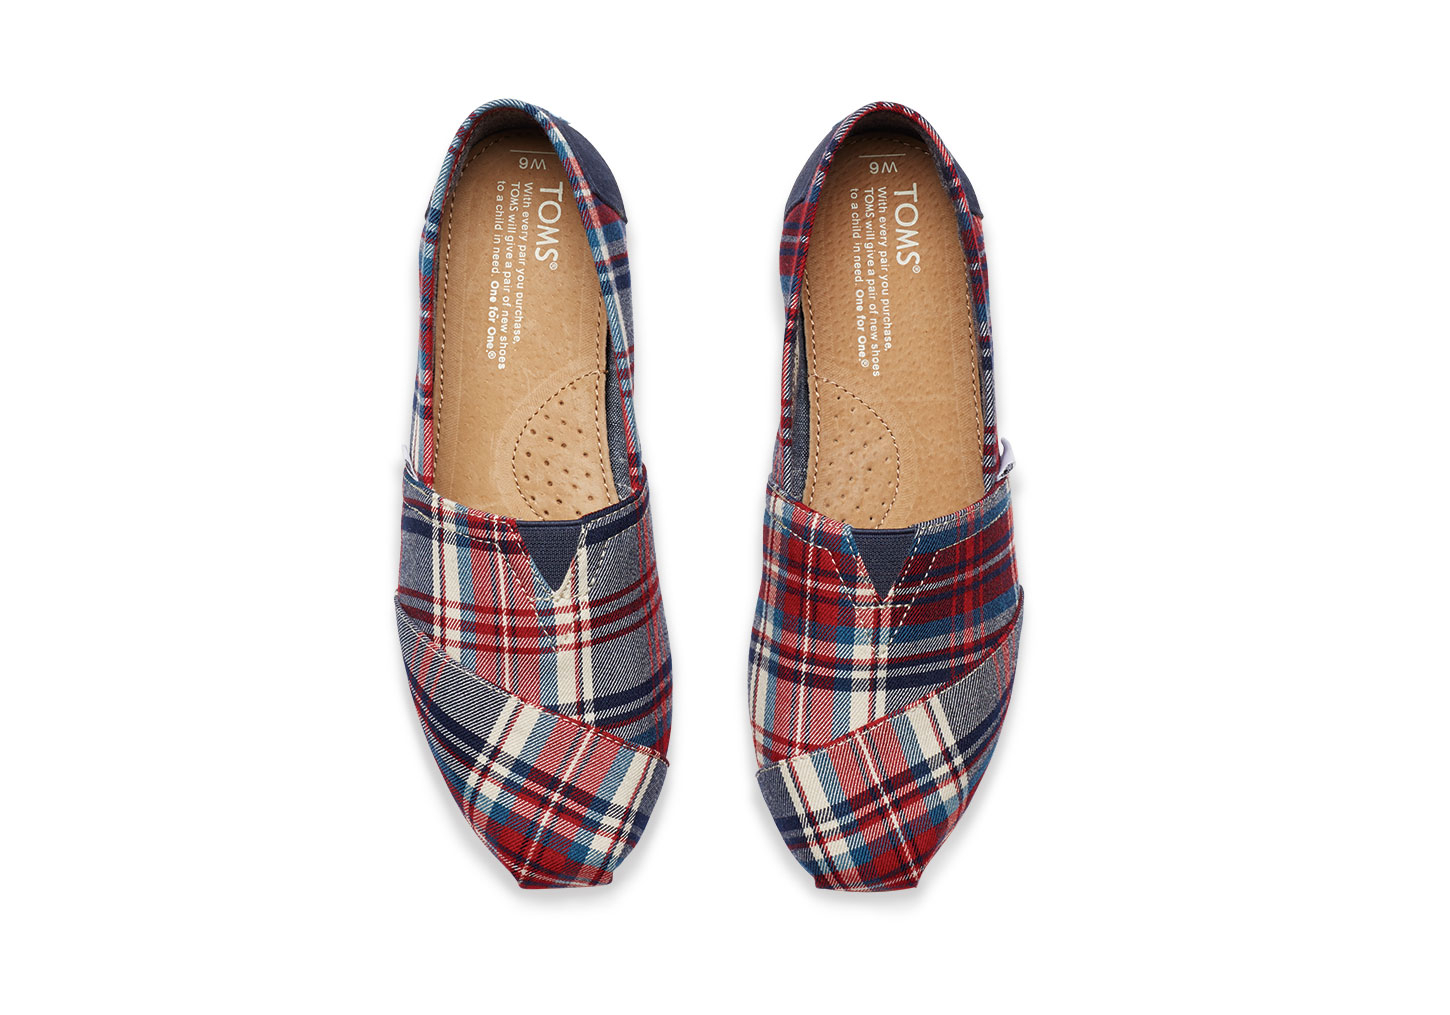 348d924b83a Lyst toms red and blue plaid women classics in red jpg 1450x1015 Red plaid  shoes women